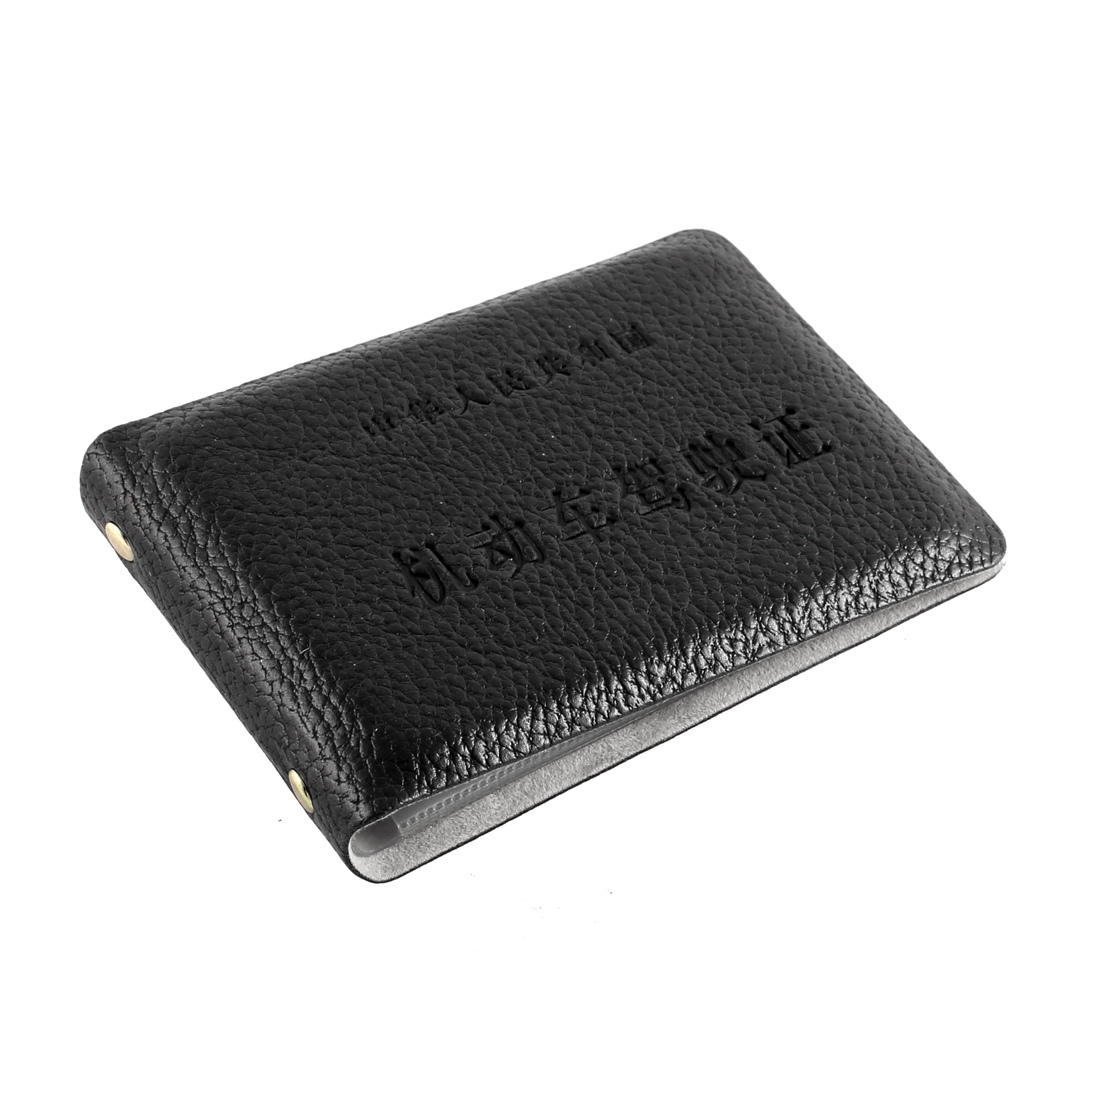 Black Faux Leather Drivers Driving Licence ID Card Holder Wallet Cover